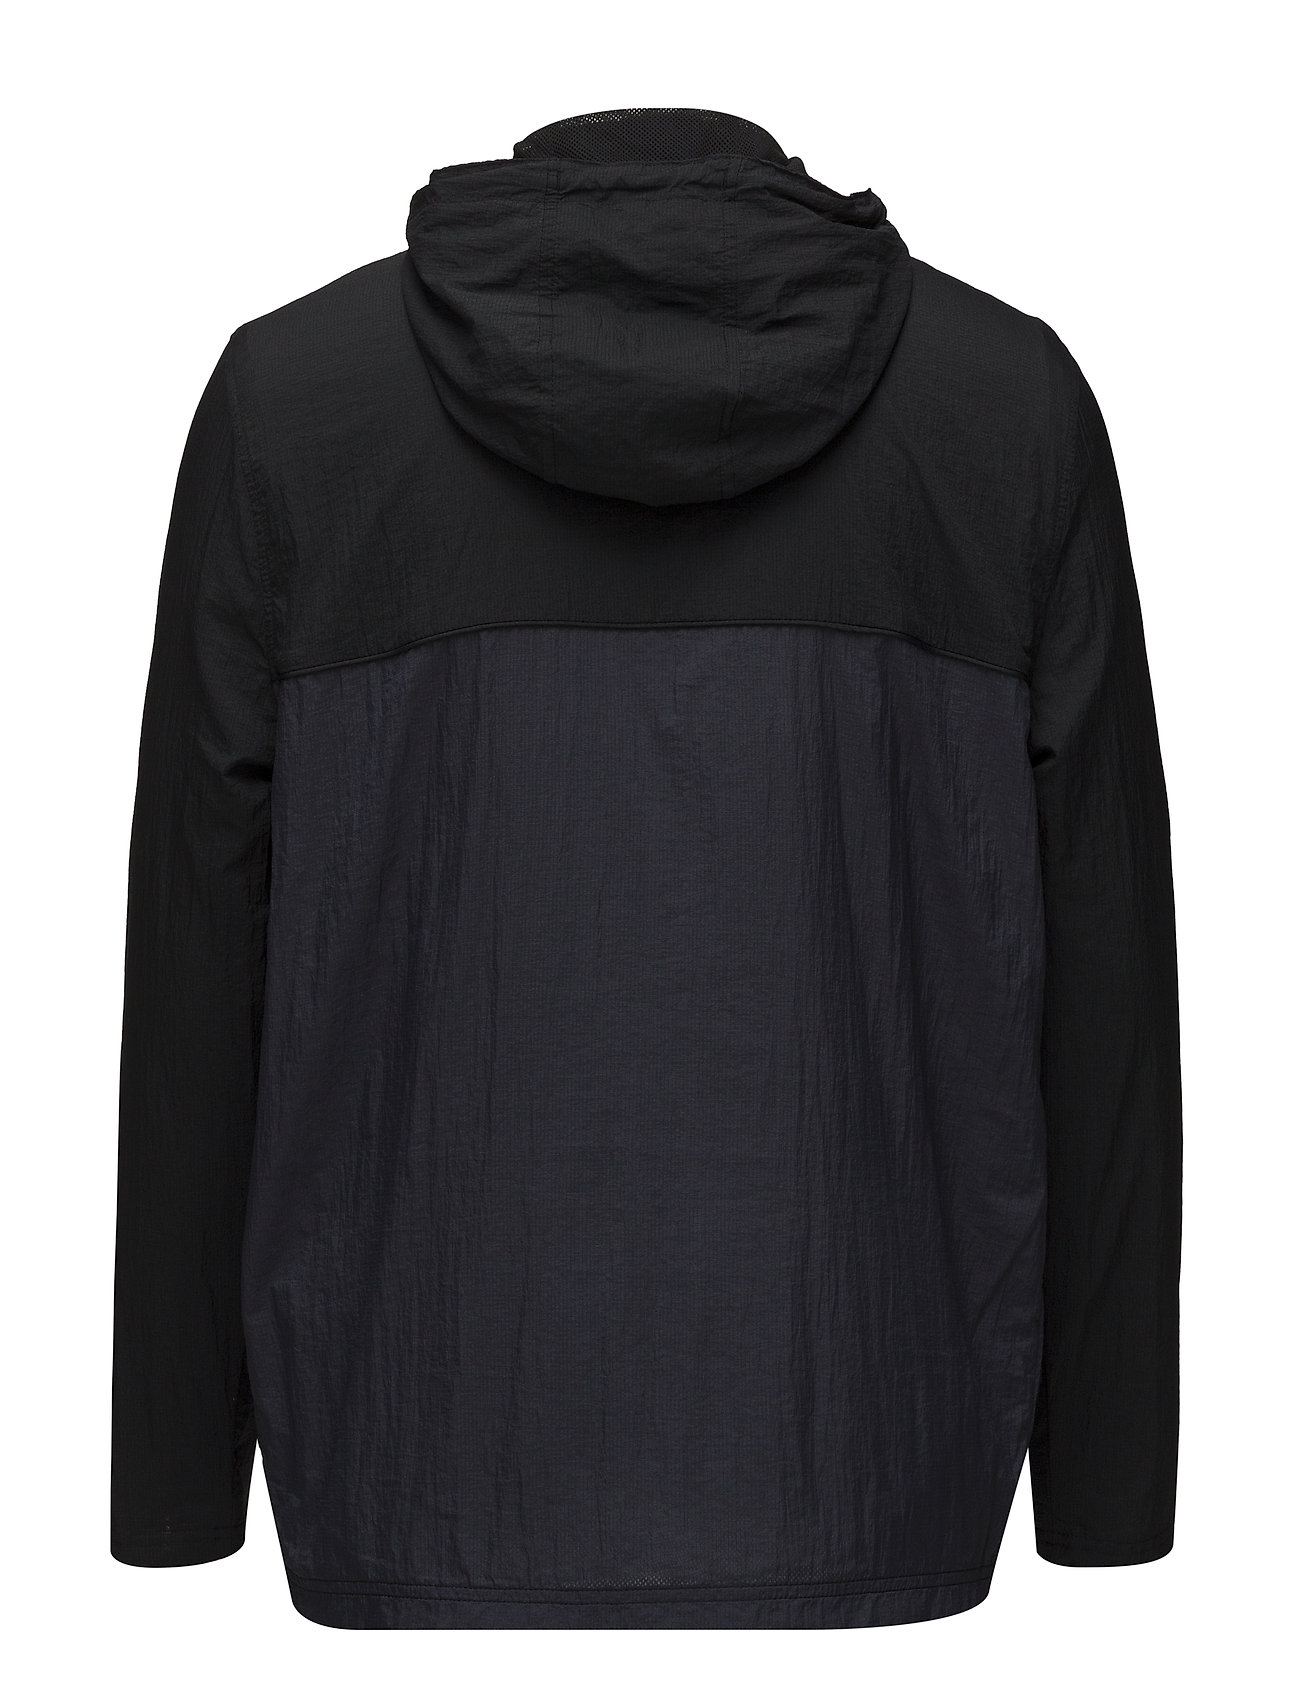 BlackLyleamp; Full Scott Hoodtrue Windbreaker Zip Sport Tul1cFKJ3